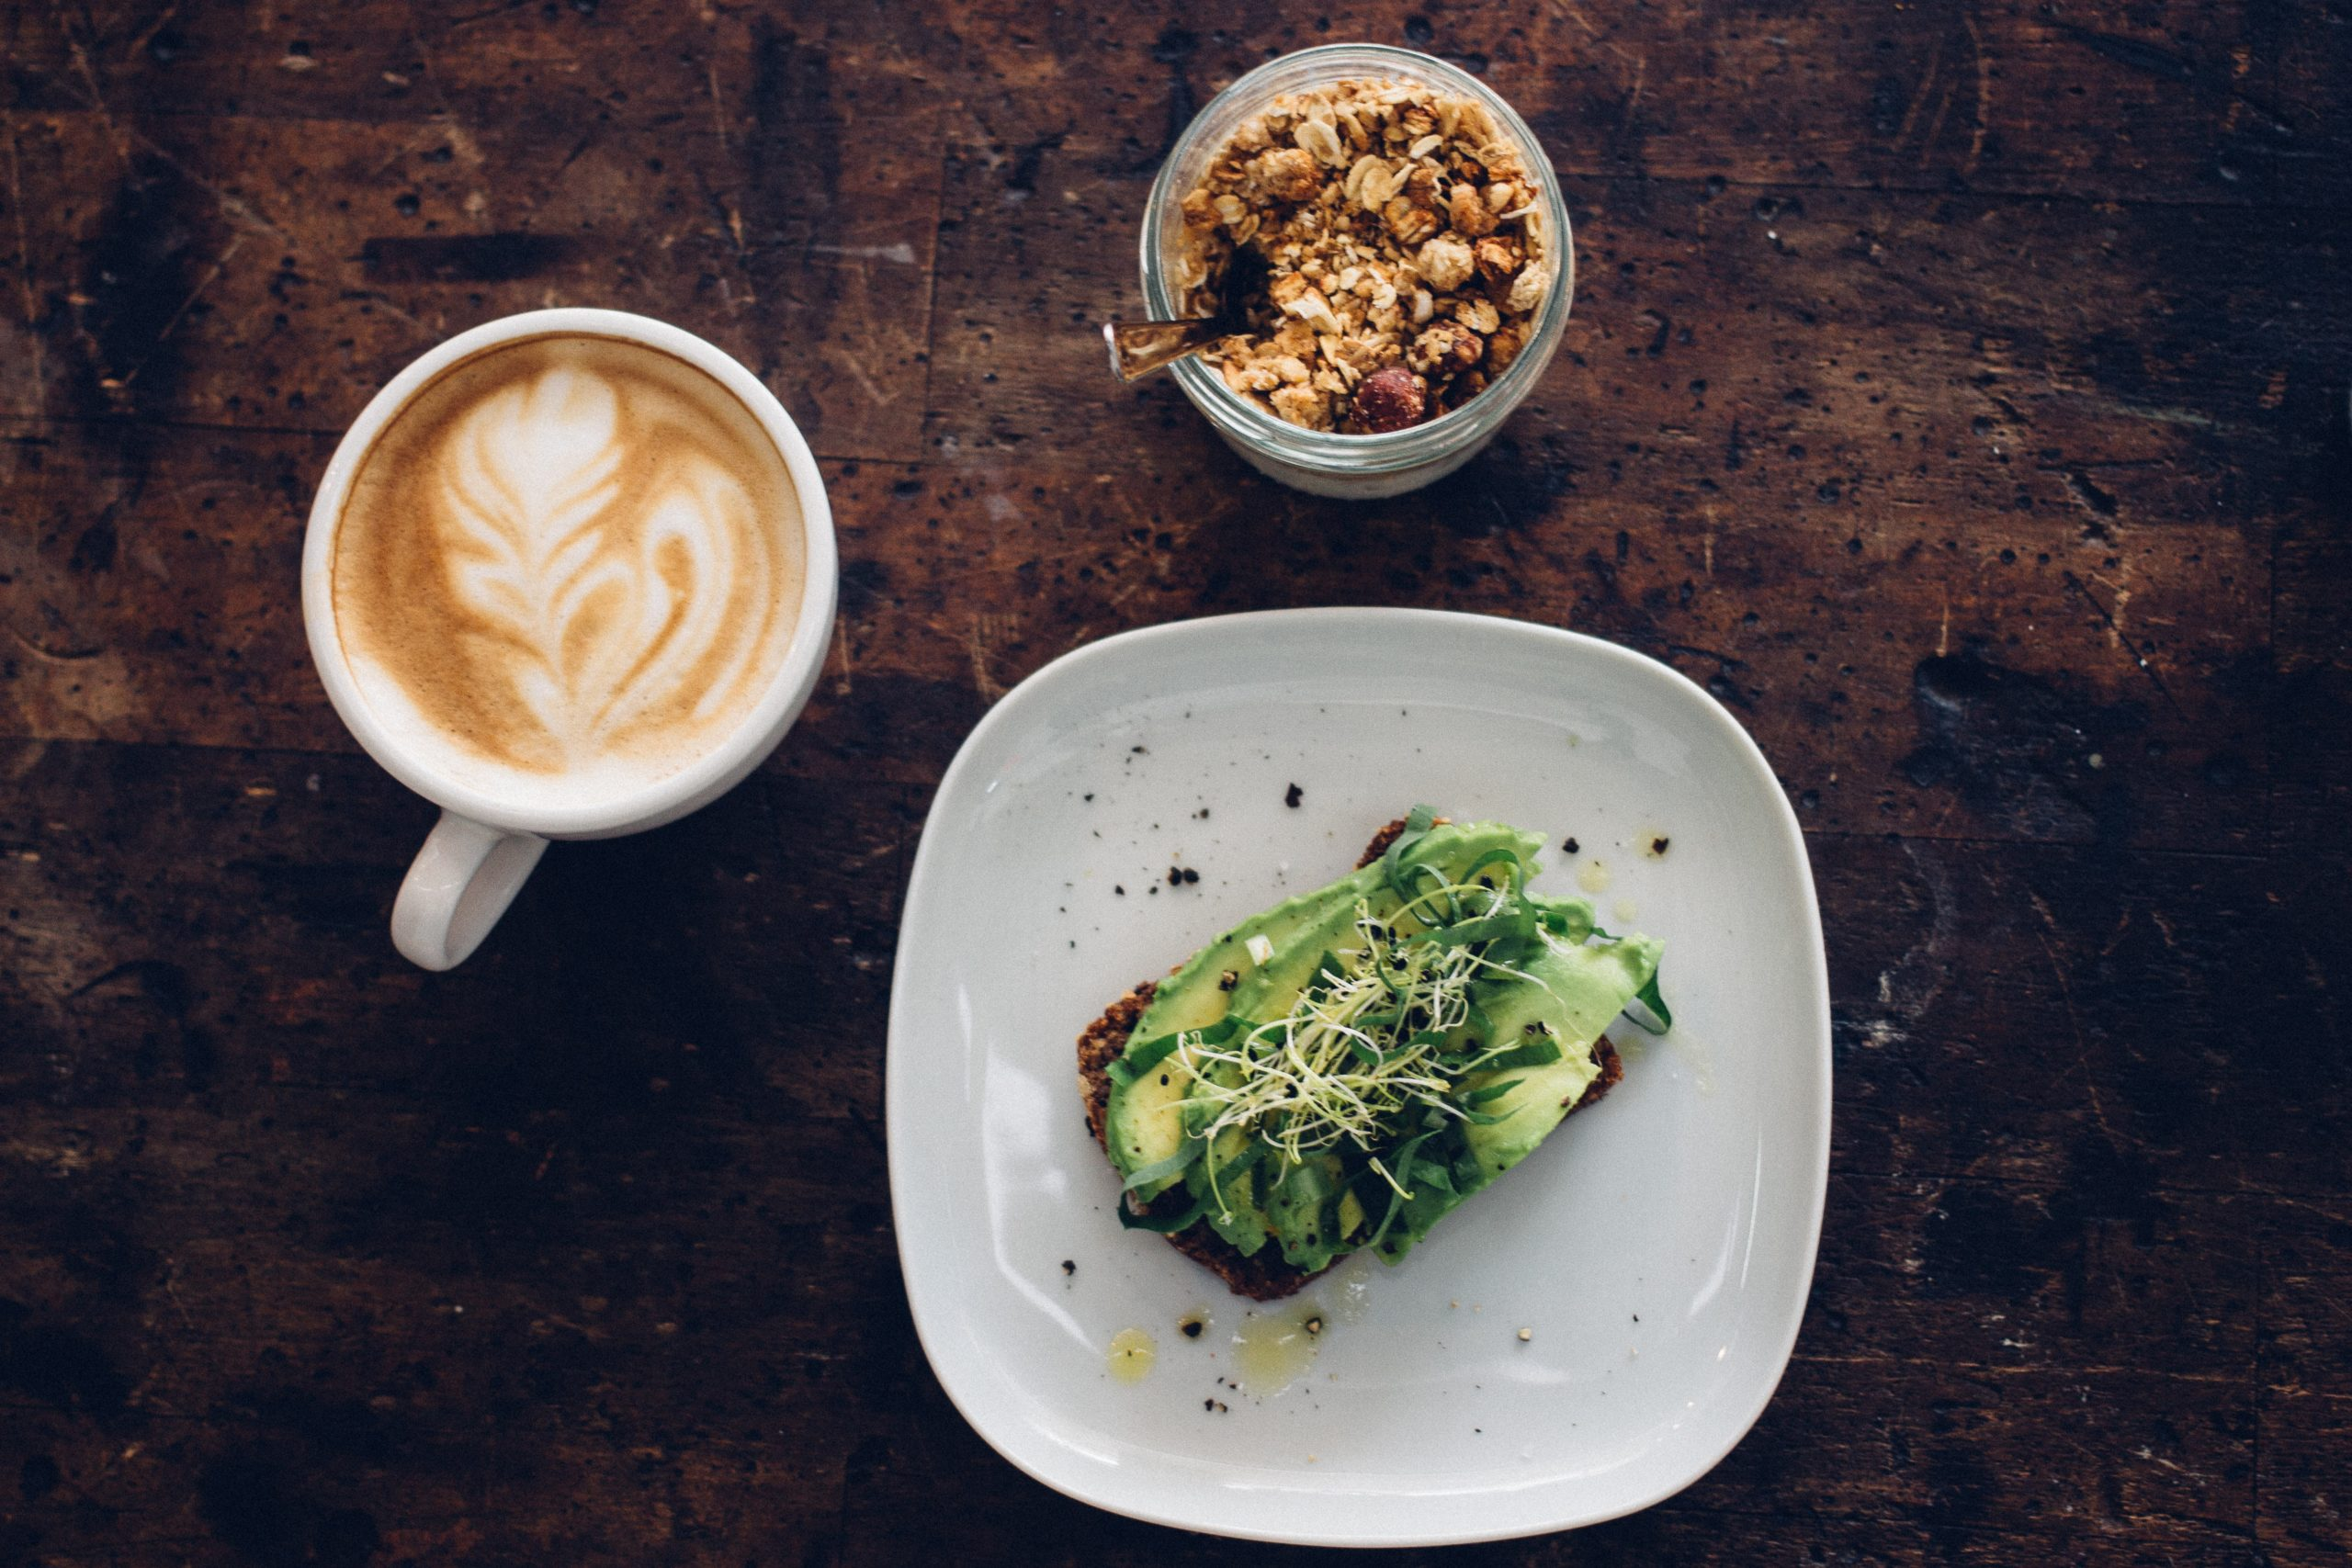 A cup of coffee, granola, and an avocado toast placed on a wooden table